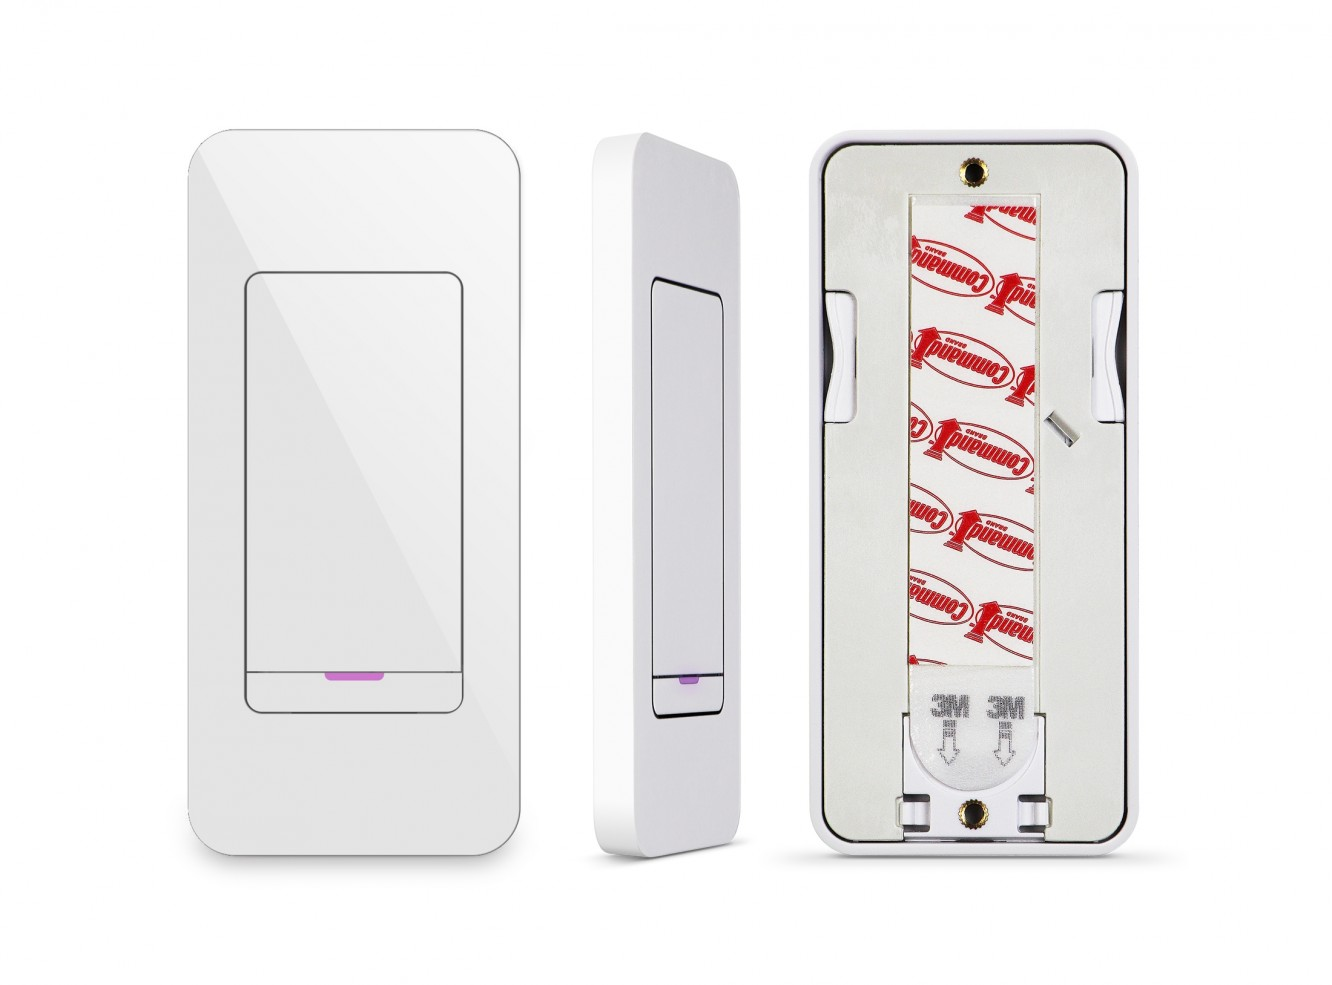 iDevices releases 'Instant Switch' wireless remote wall switch